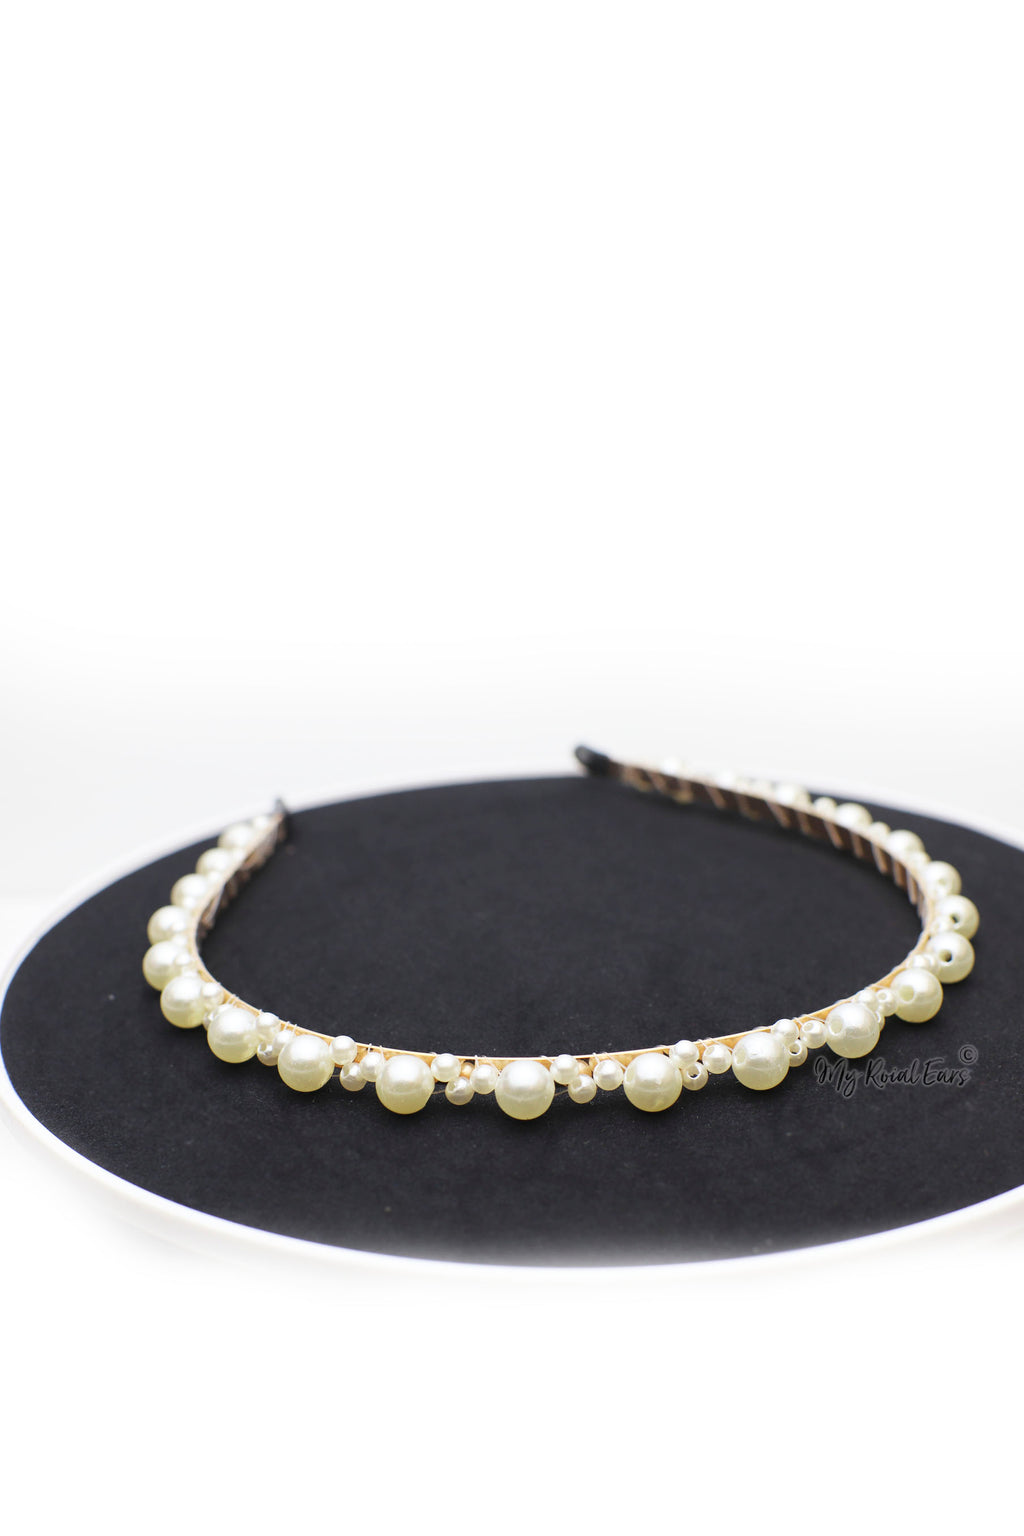 Queen Amy- small and large pearl design headbands - My Roial Ears LTD